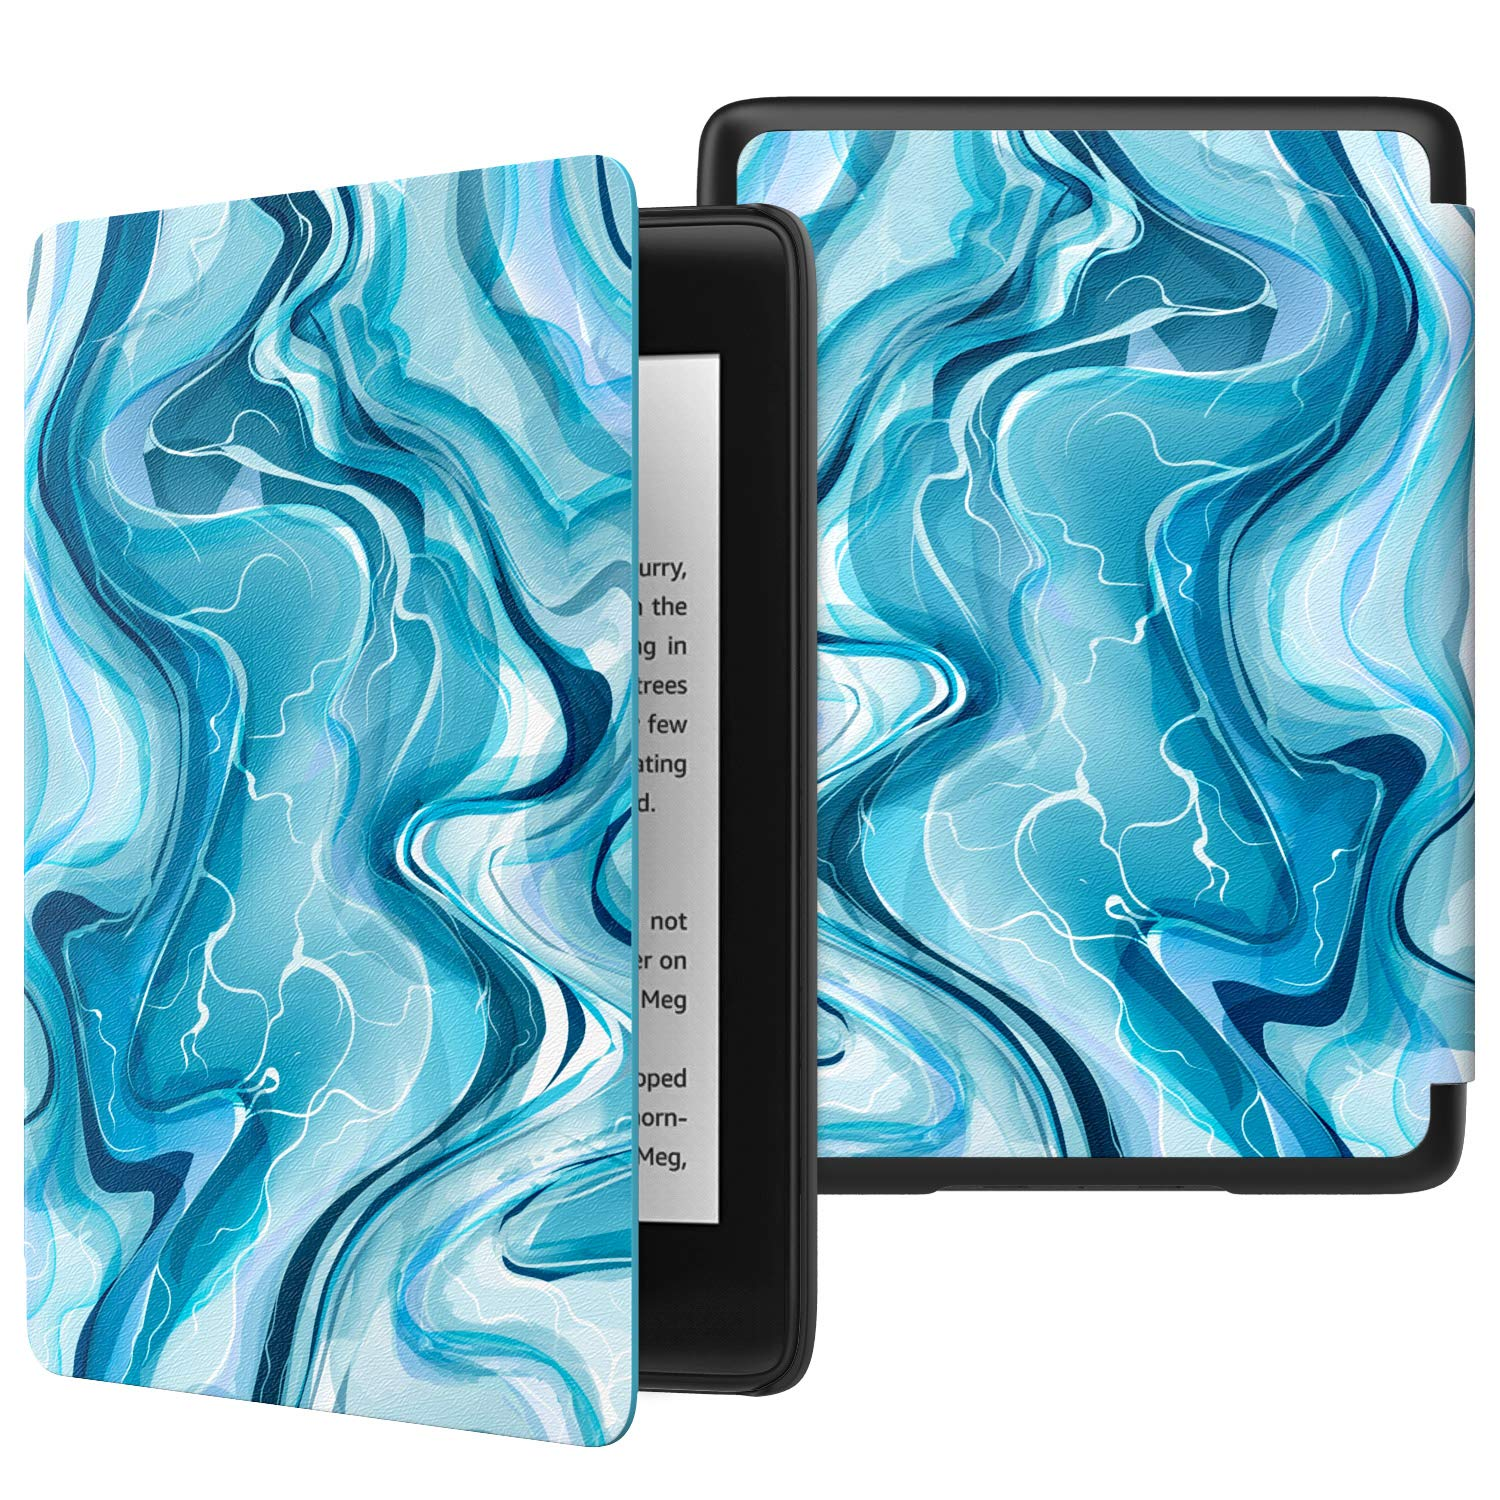 MoKo Case Fits K i n d l e Paper w h i t e (10th Generation, 2018 Release), Thinnest Lightest Smart Shell Cover with Auto Wake/Sleep for K i n d l e Paper w h i t e E-Reader 2018 - Blue Water Color